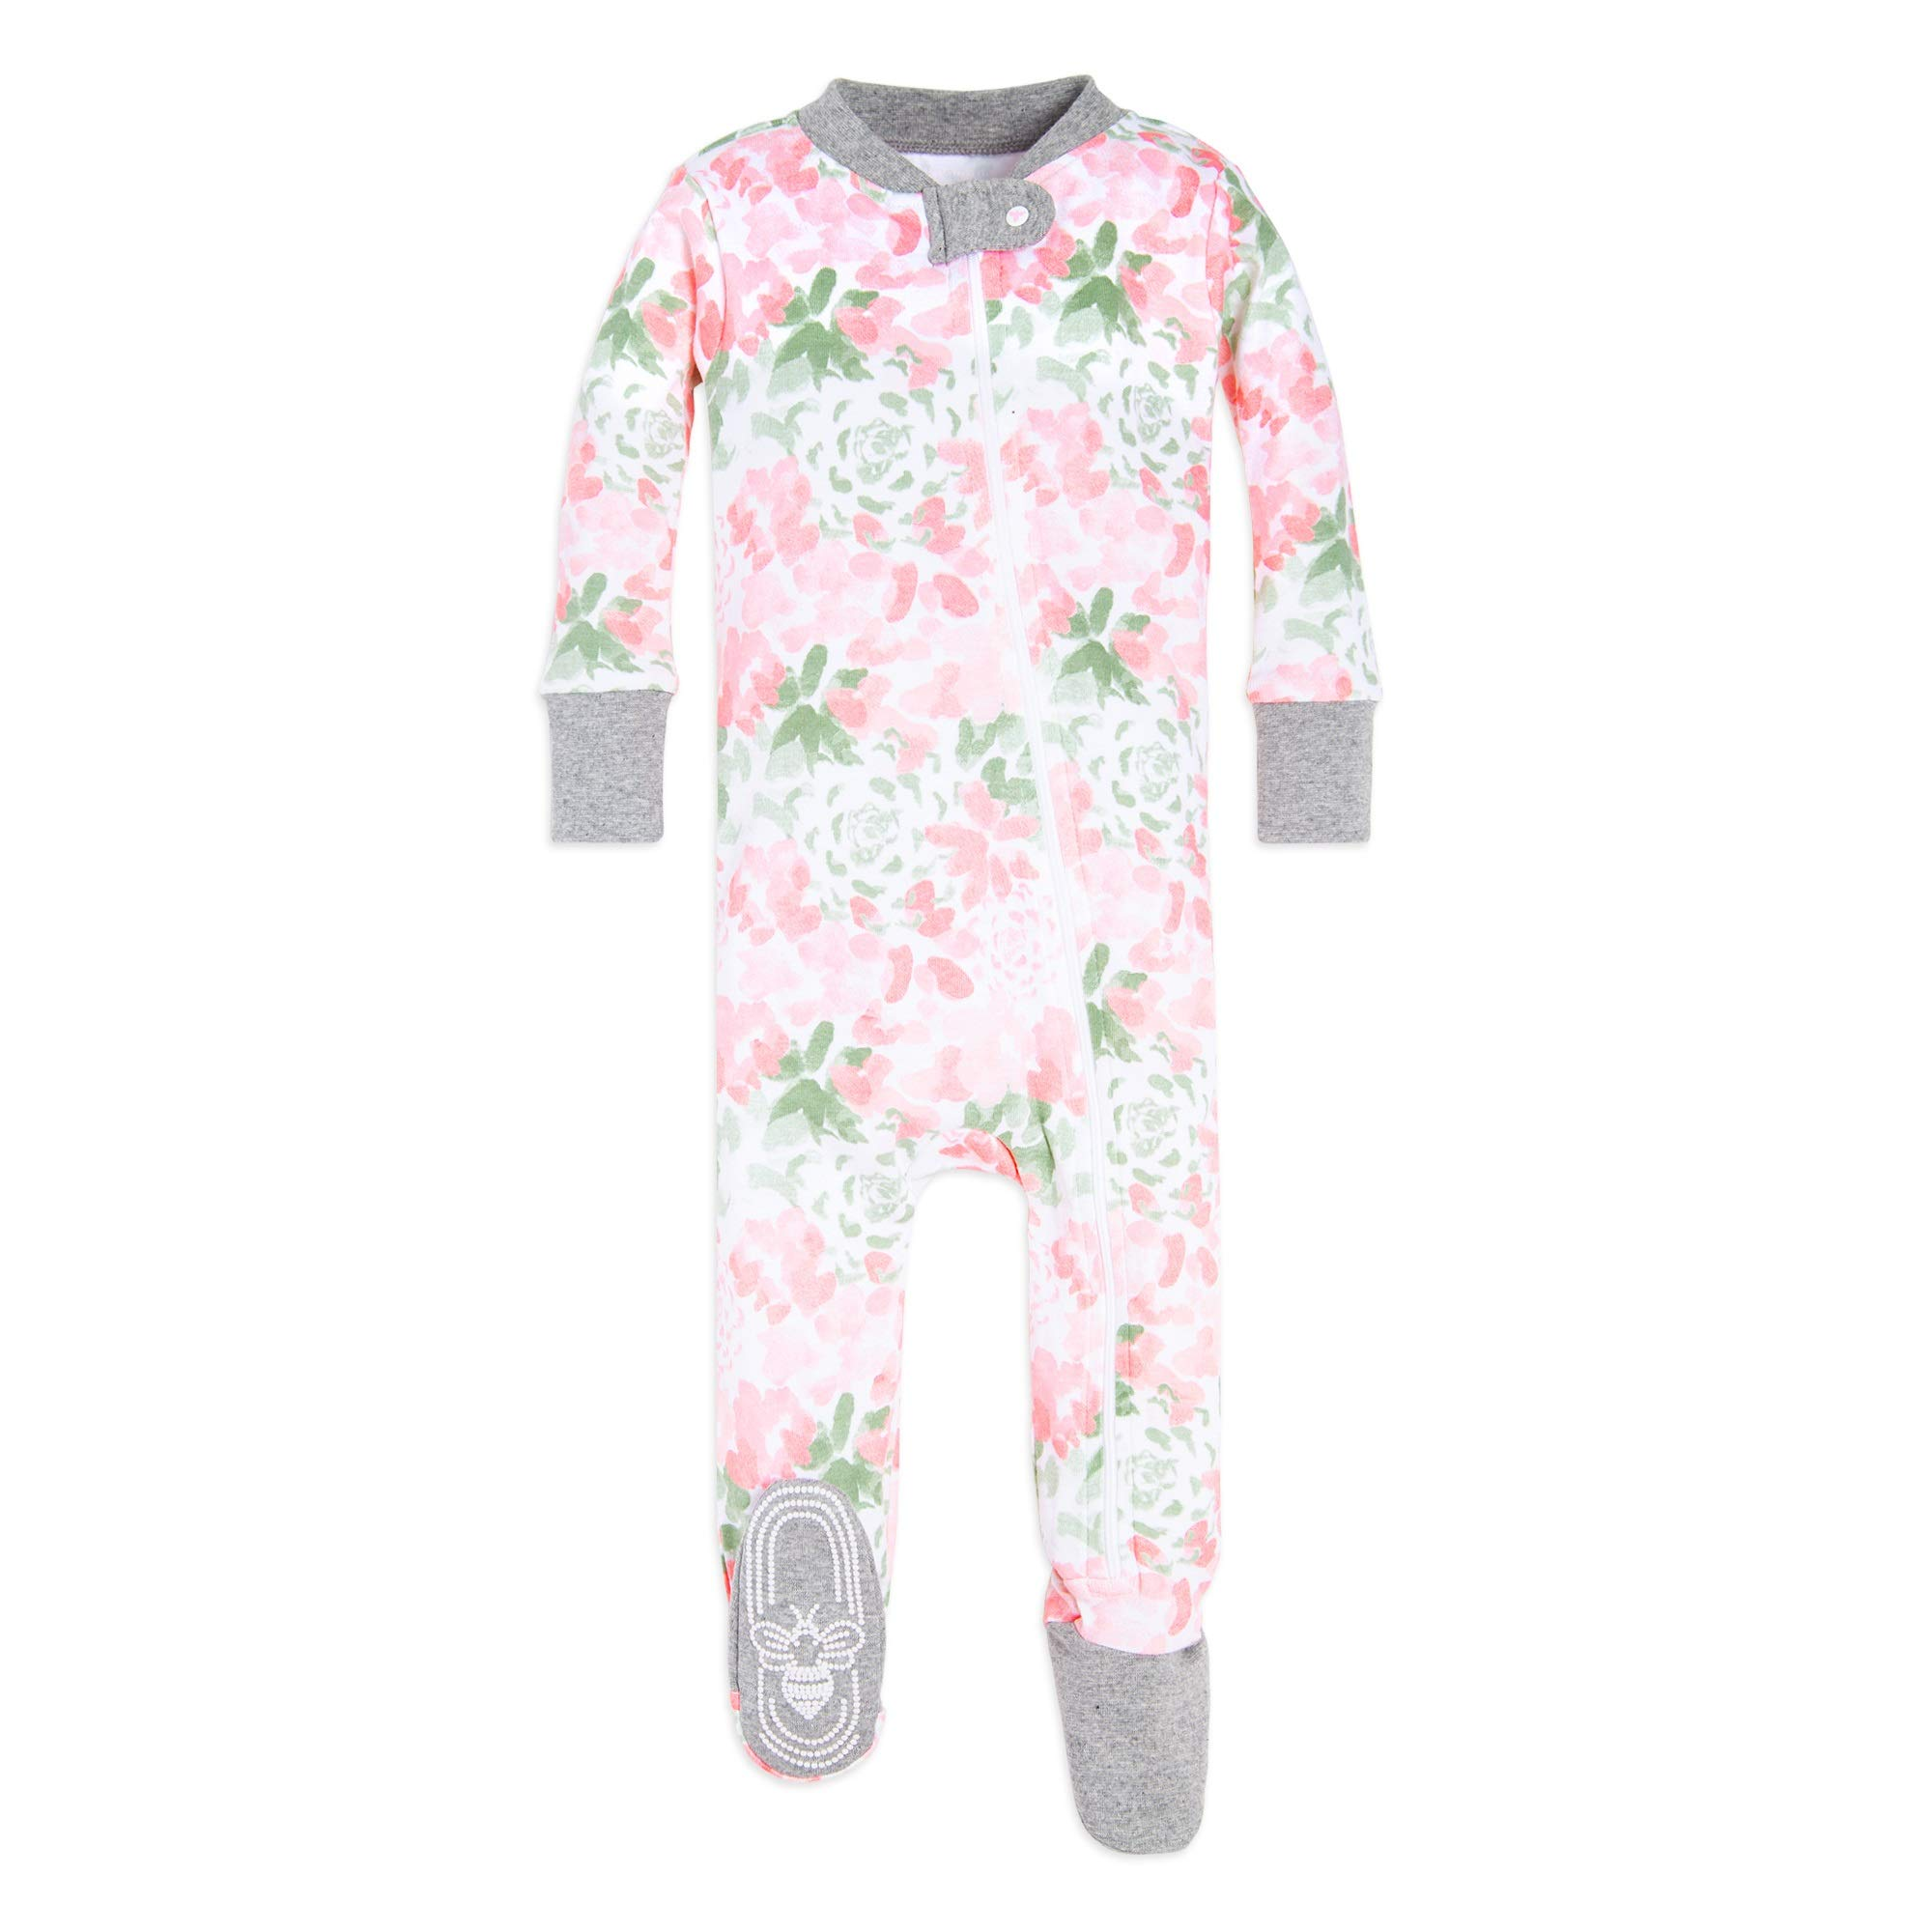 Burt's Bees Baby Baby Girls' Pajamas, Zip Front Non-Slip Footed Sleeper Pjs, 100% Organic Cotton, Tossed Succulent, 18 Months